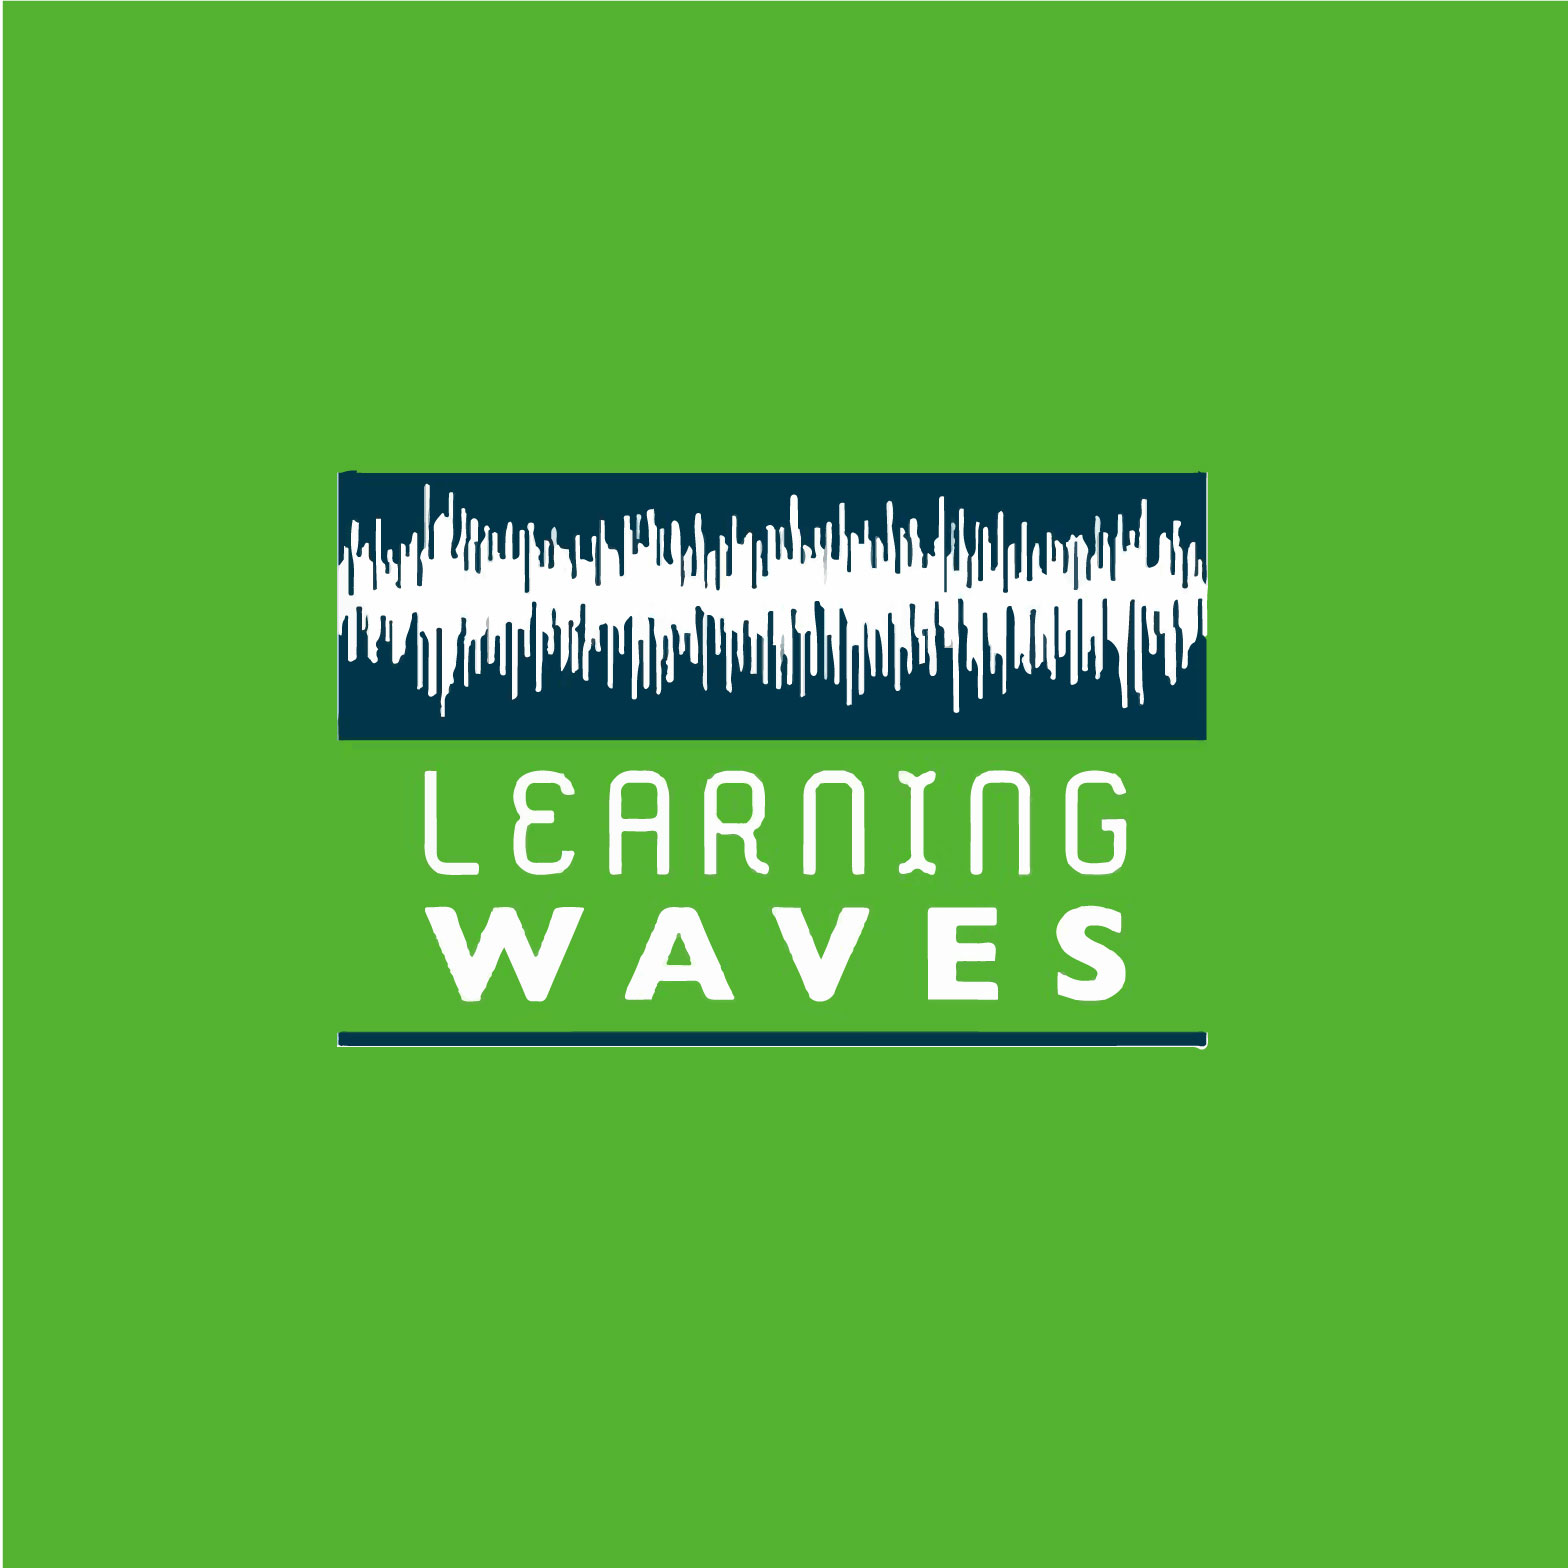 Learning-waves.jpg